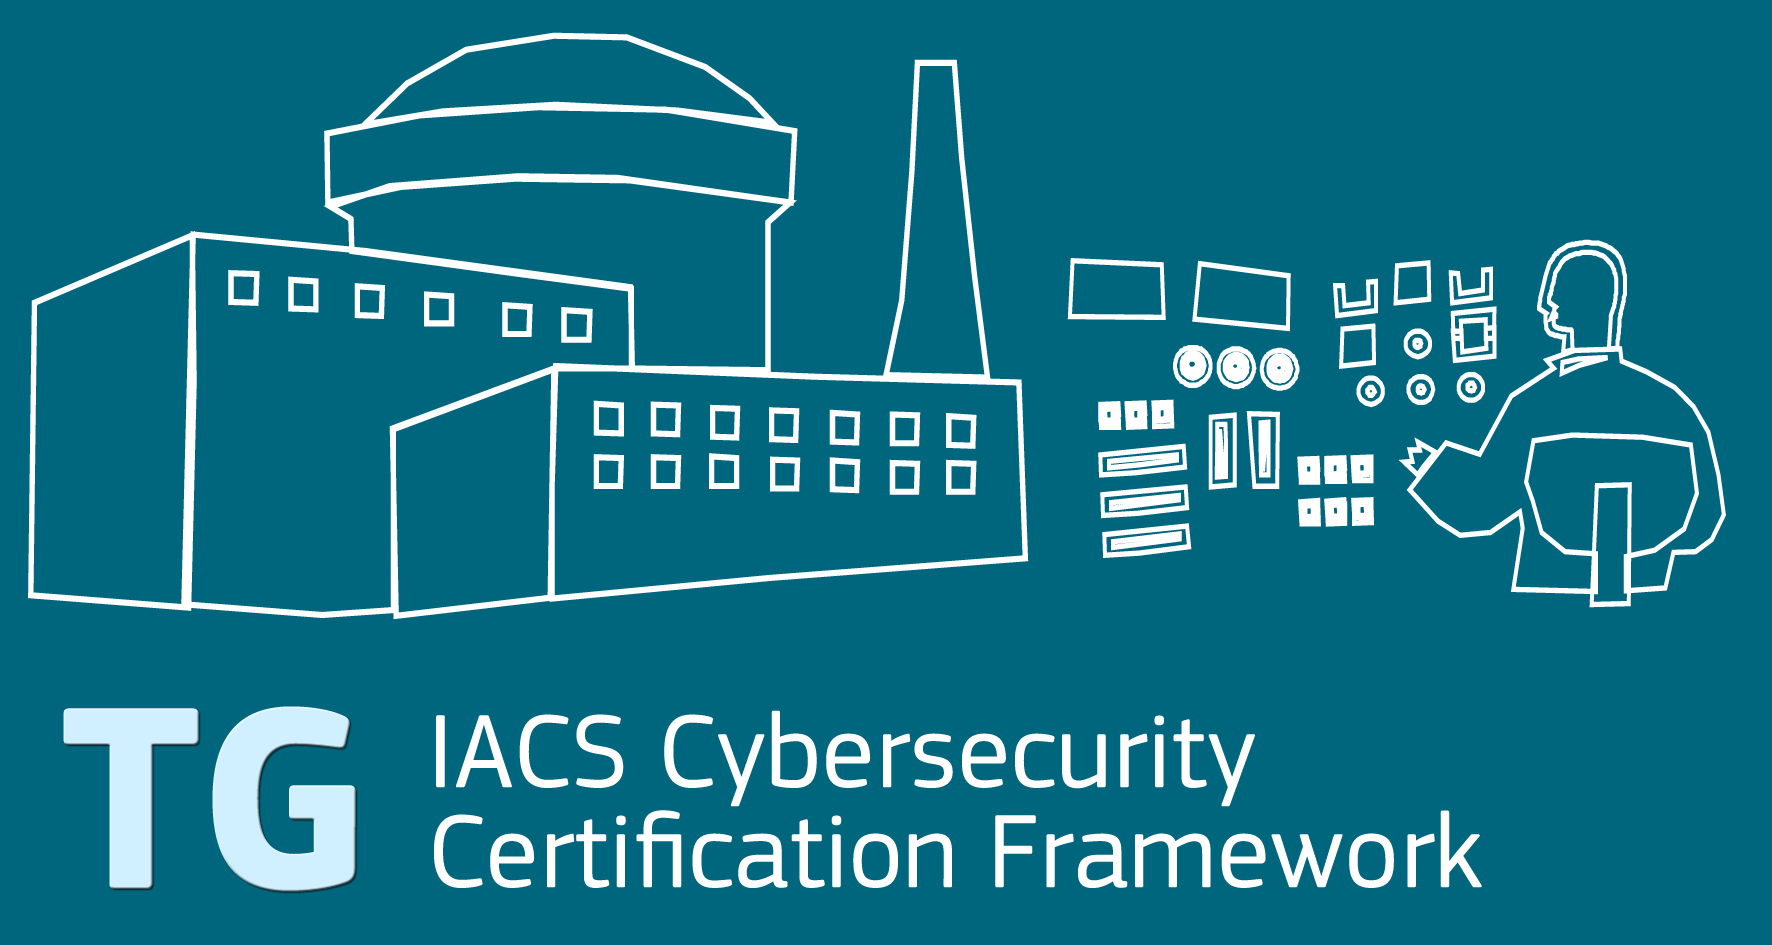 Iacs Cybersecurity Certification Framework Erncip Project